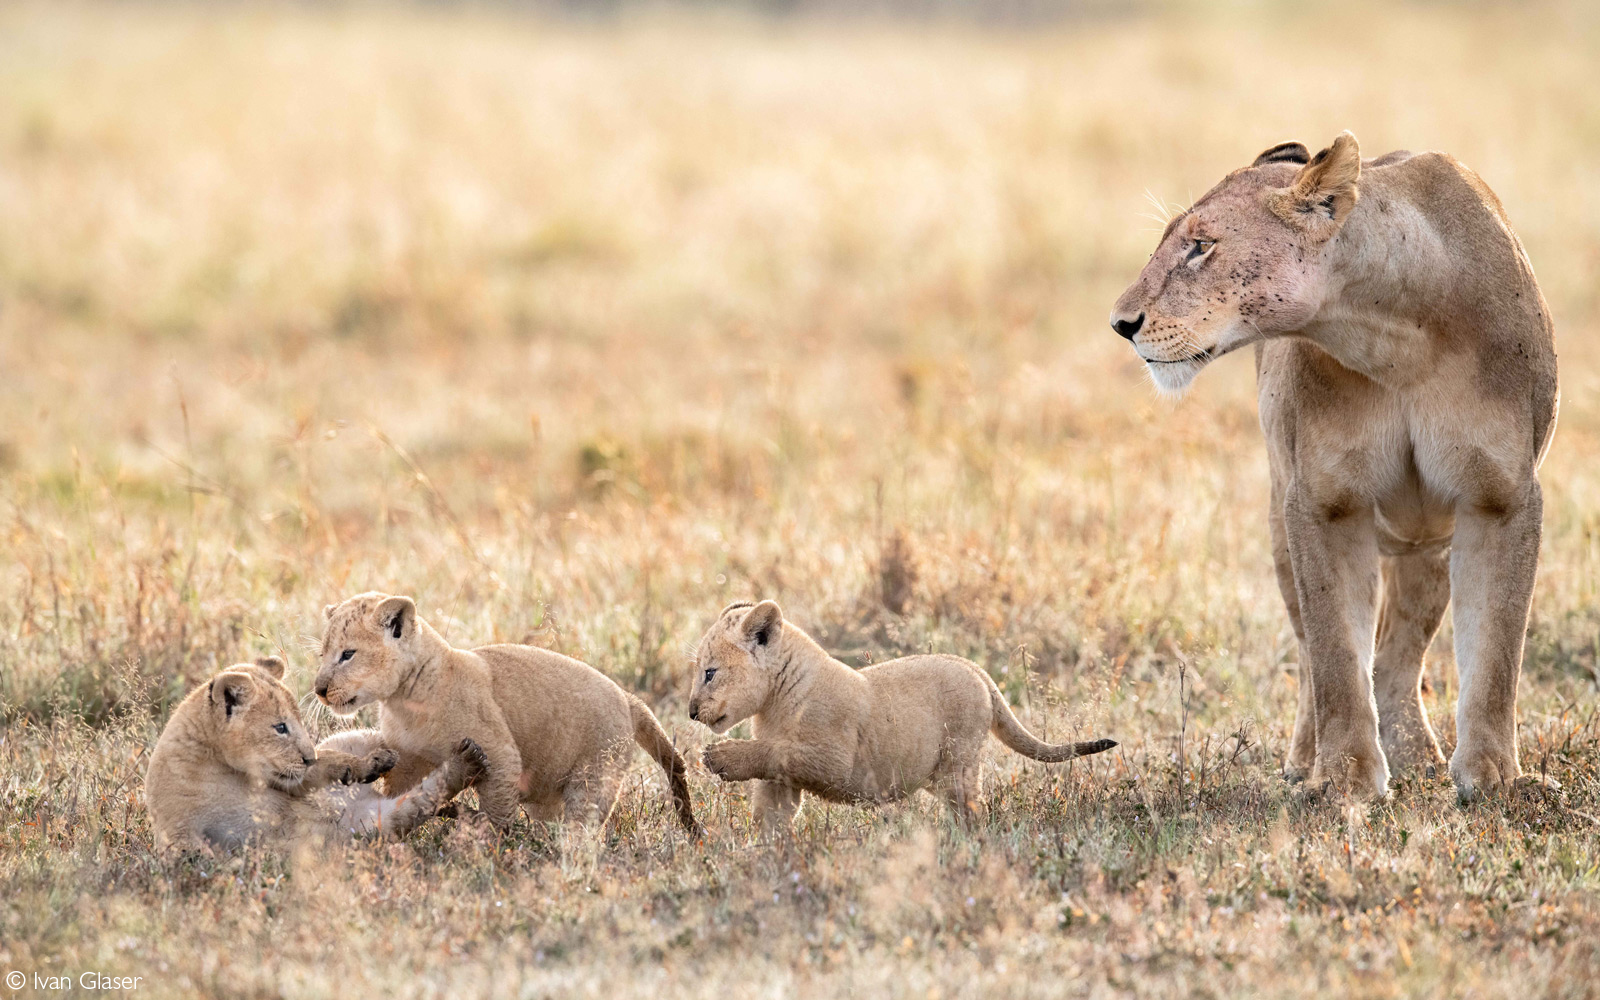 """The lioness named """"Longneck"""" and three of her cubs. Maasai Mara National Reserve, Kenya © Ivan Glaser"""